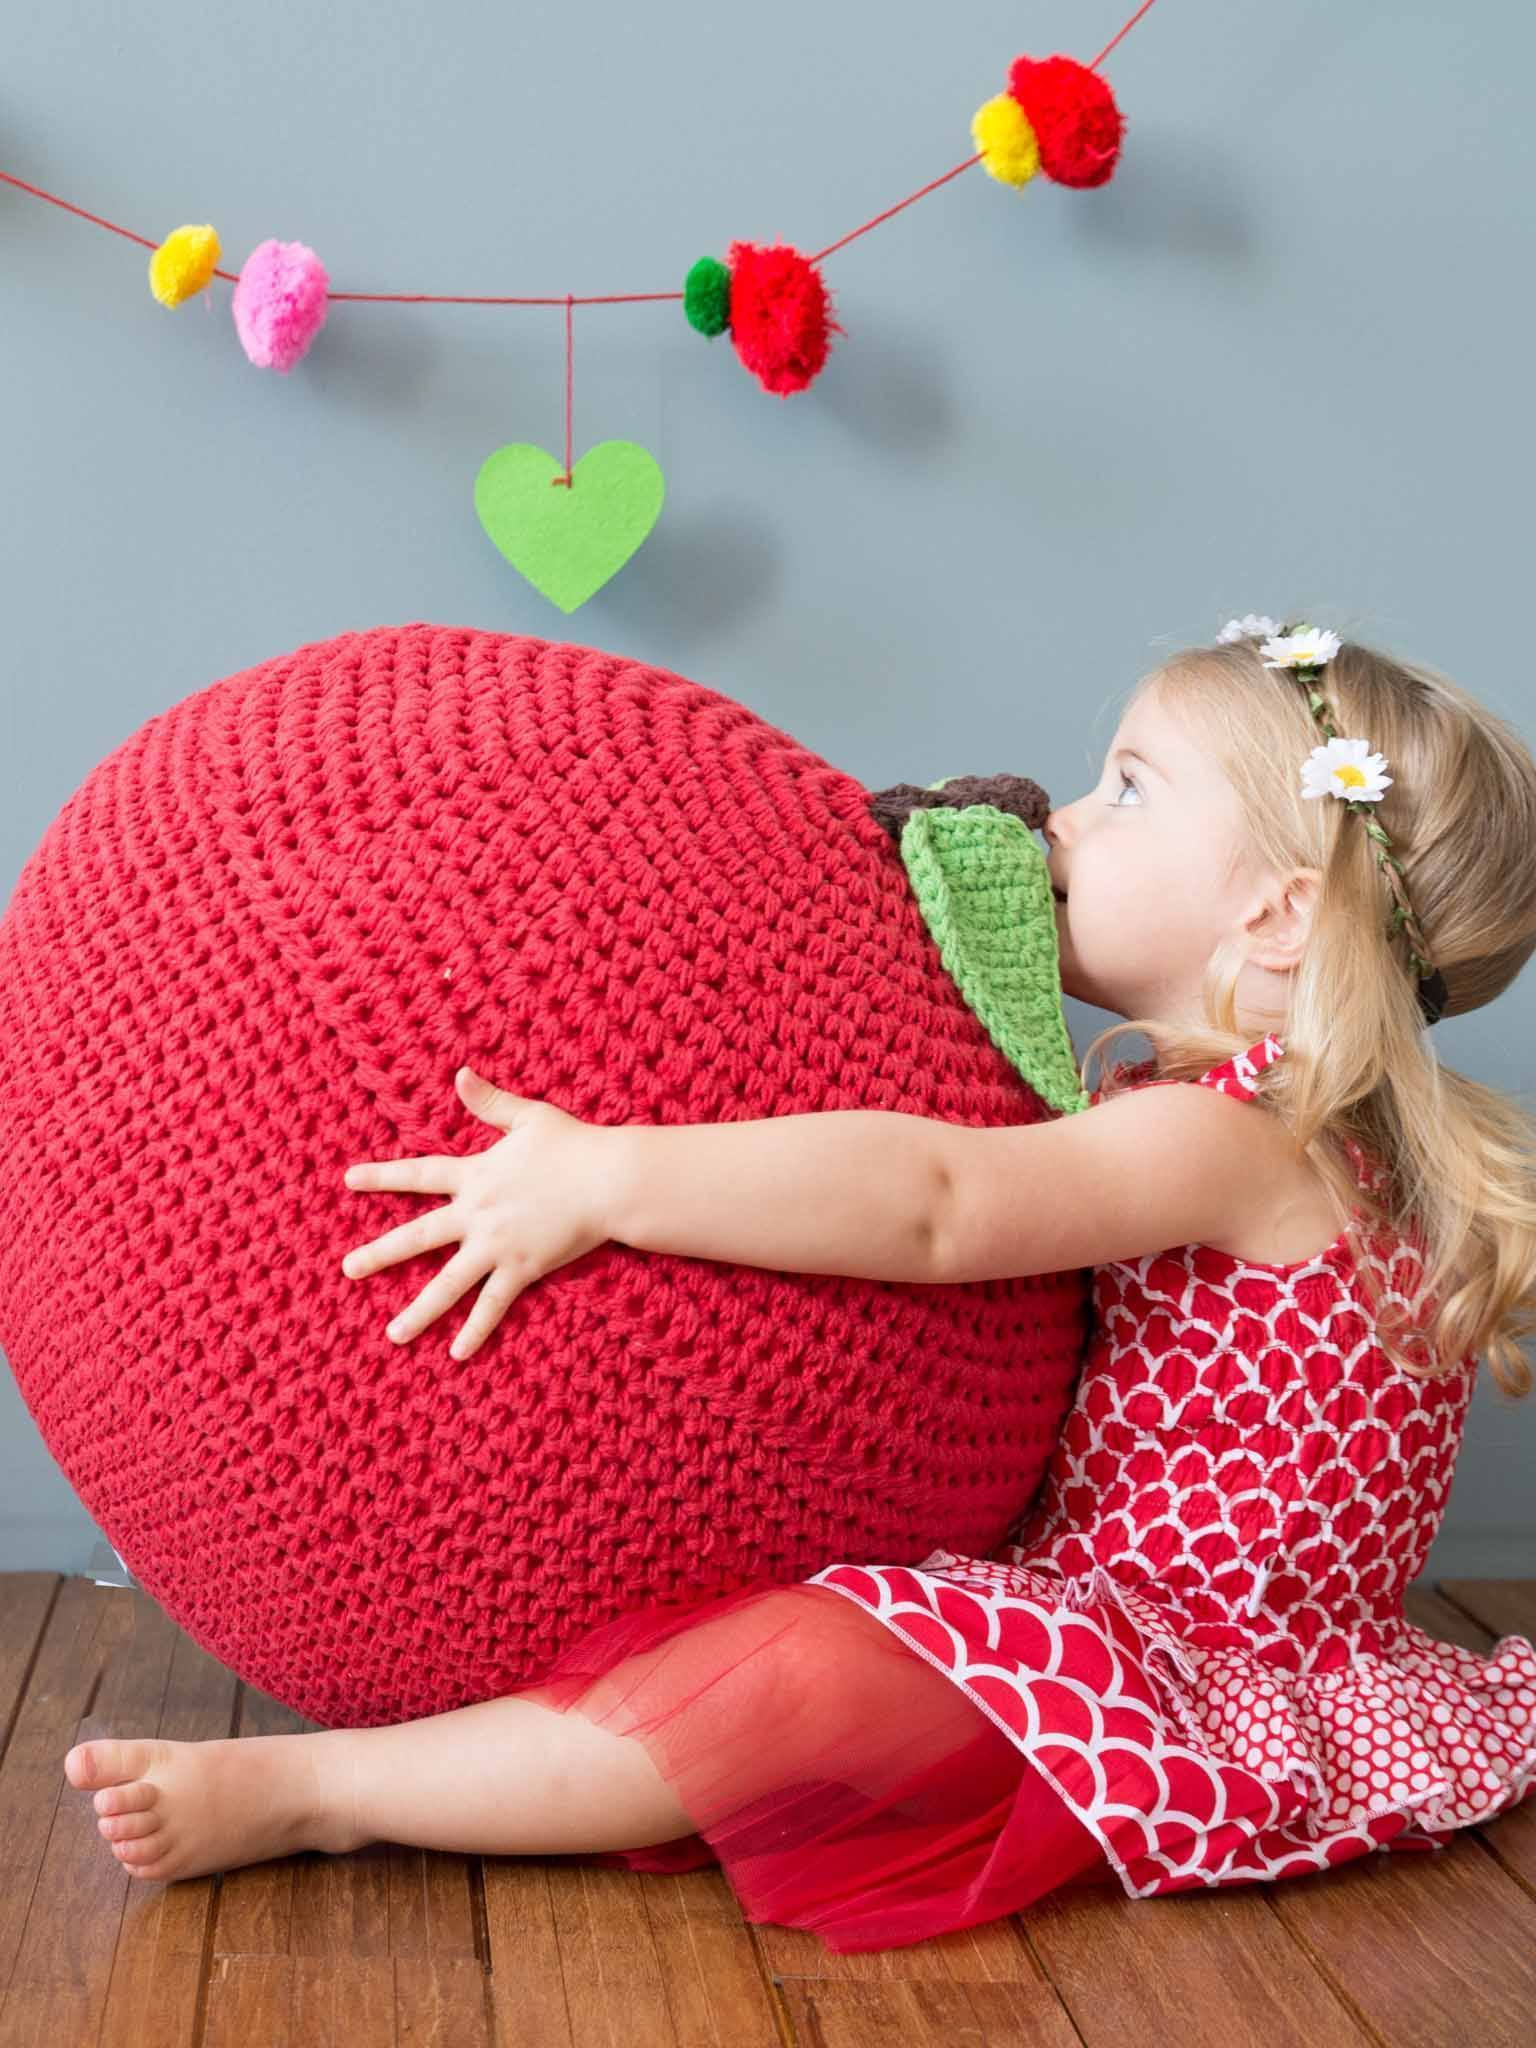 Fruiti Red Apple Ottoman, Homewares - Oobi Girls Kid Fashion